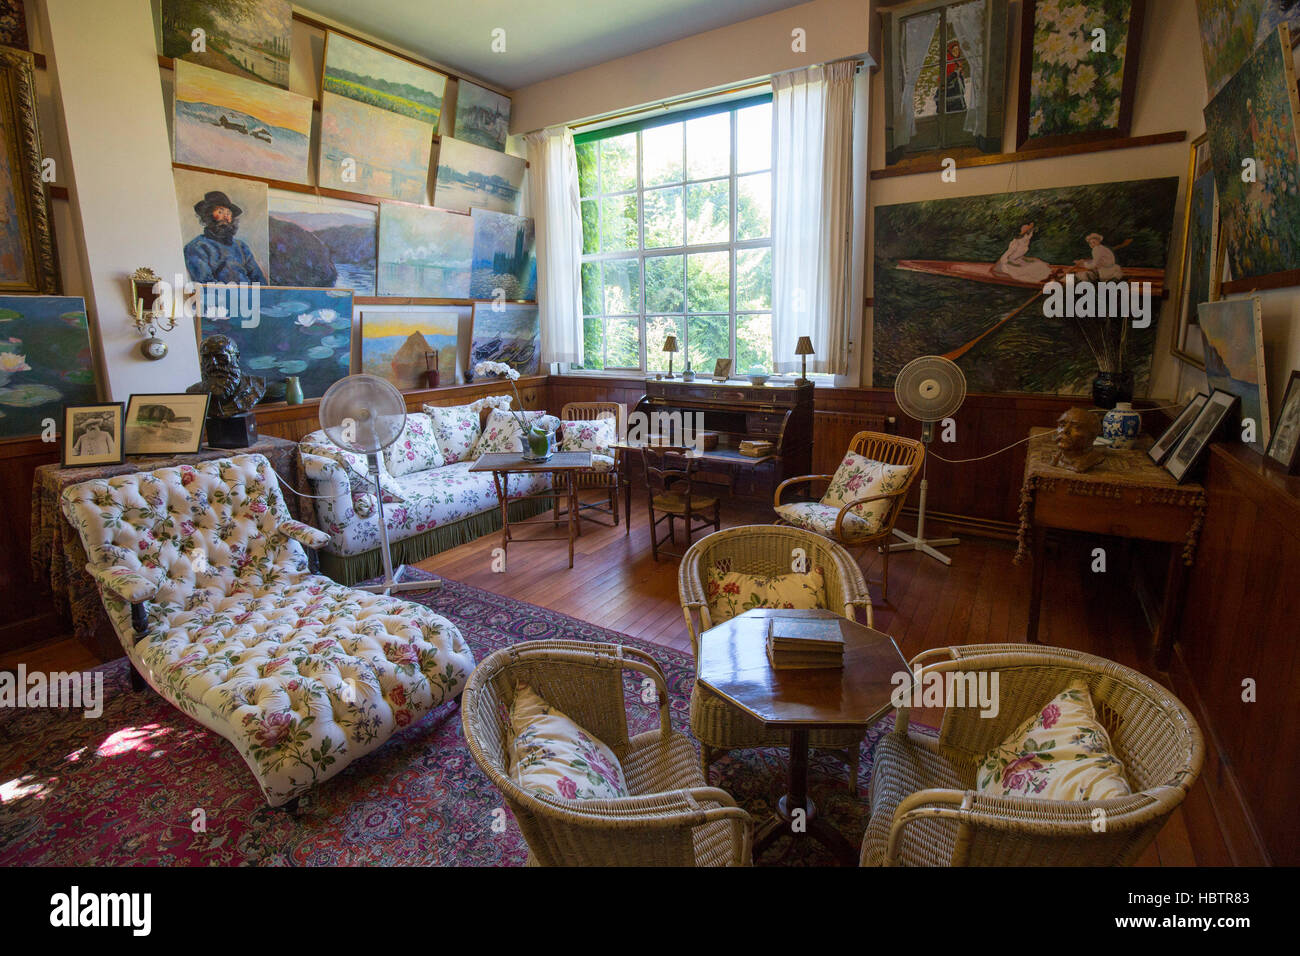 Salon atelier, House of Claude Monet, Giverny, Normandy Stock Photo on